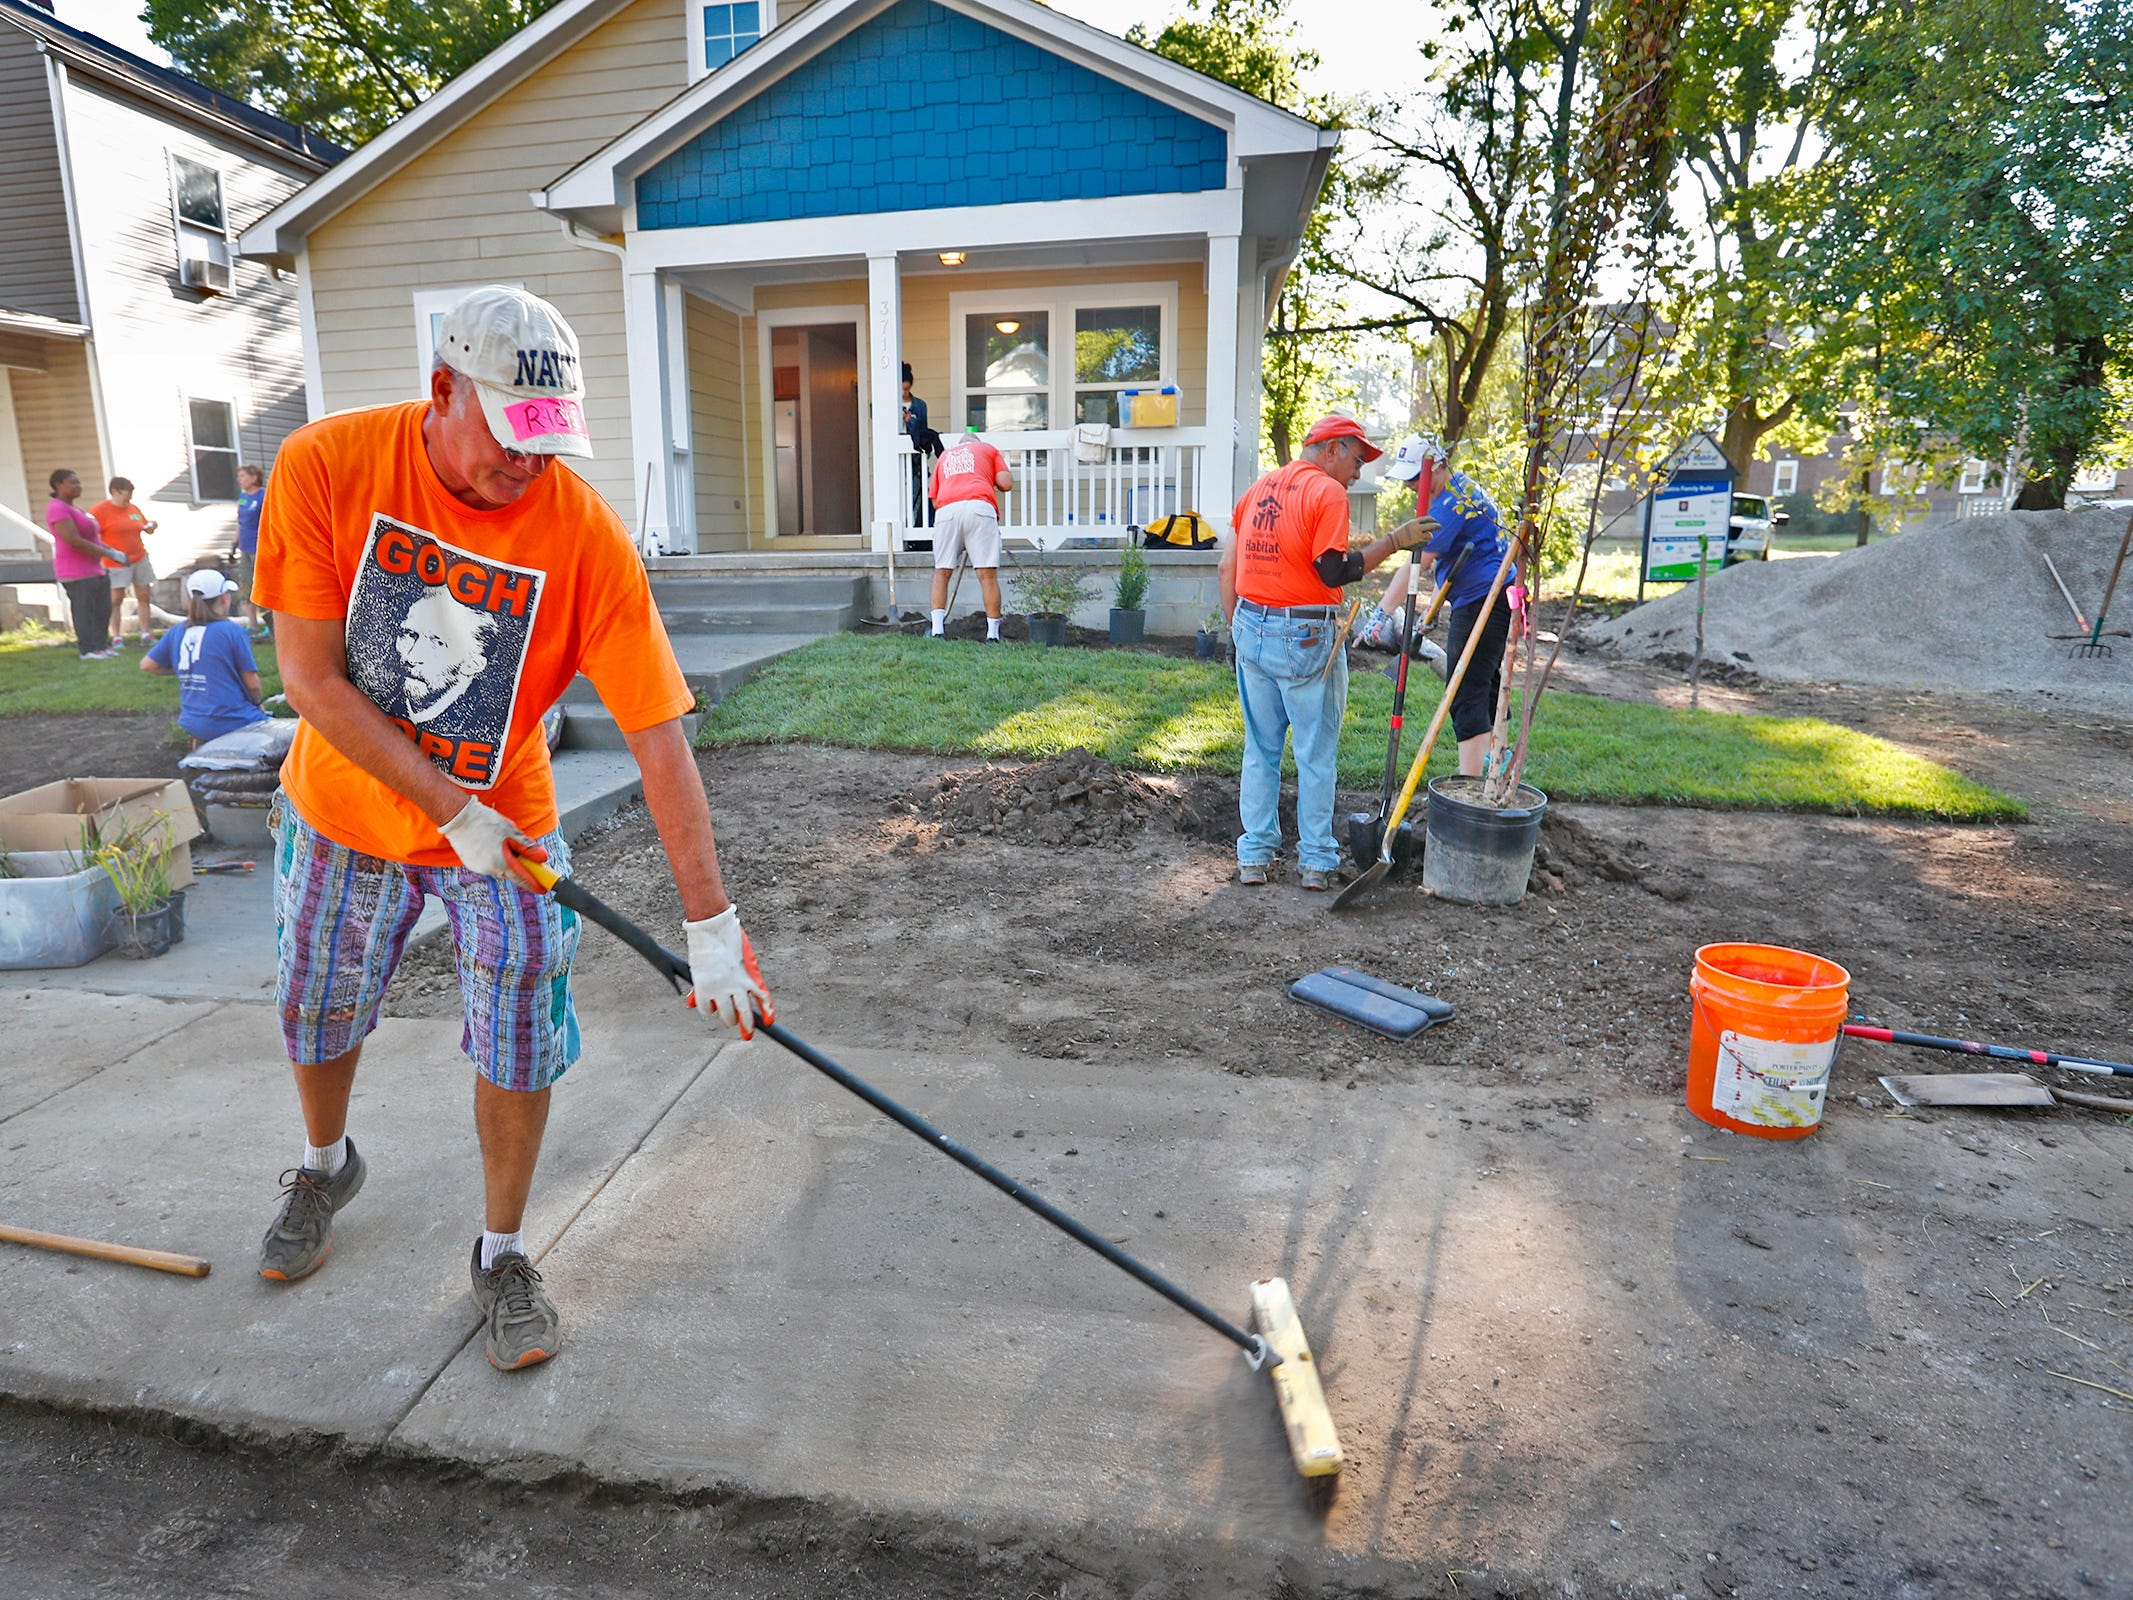 Rick Wurster sweeps the front sidewalk of a Habitat for Humanity home, during the 10th Annual IU Health Day of Service, Friday, Sept. 13, 2018.  IU Health team members donated time and effort building and finishing a Habitat for Humanity home in the 3700 block of Kenwood Ave. For 22 days, with partner volunteers, over 250 members of the IU Health team have donated more than 1680 hours at the house that will become the new home for the Ndatira family.